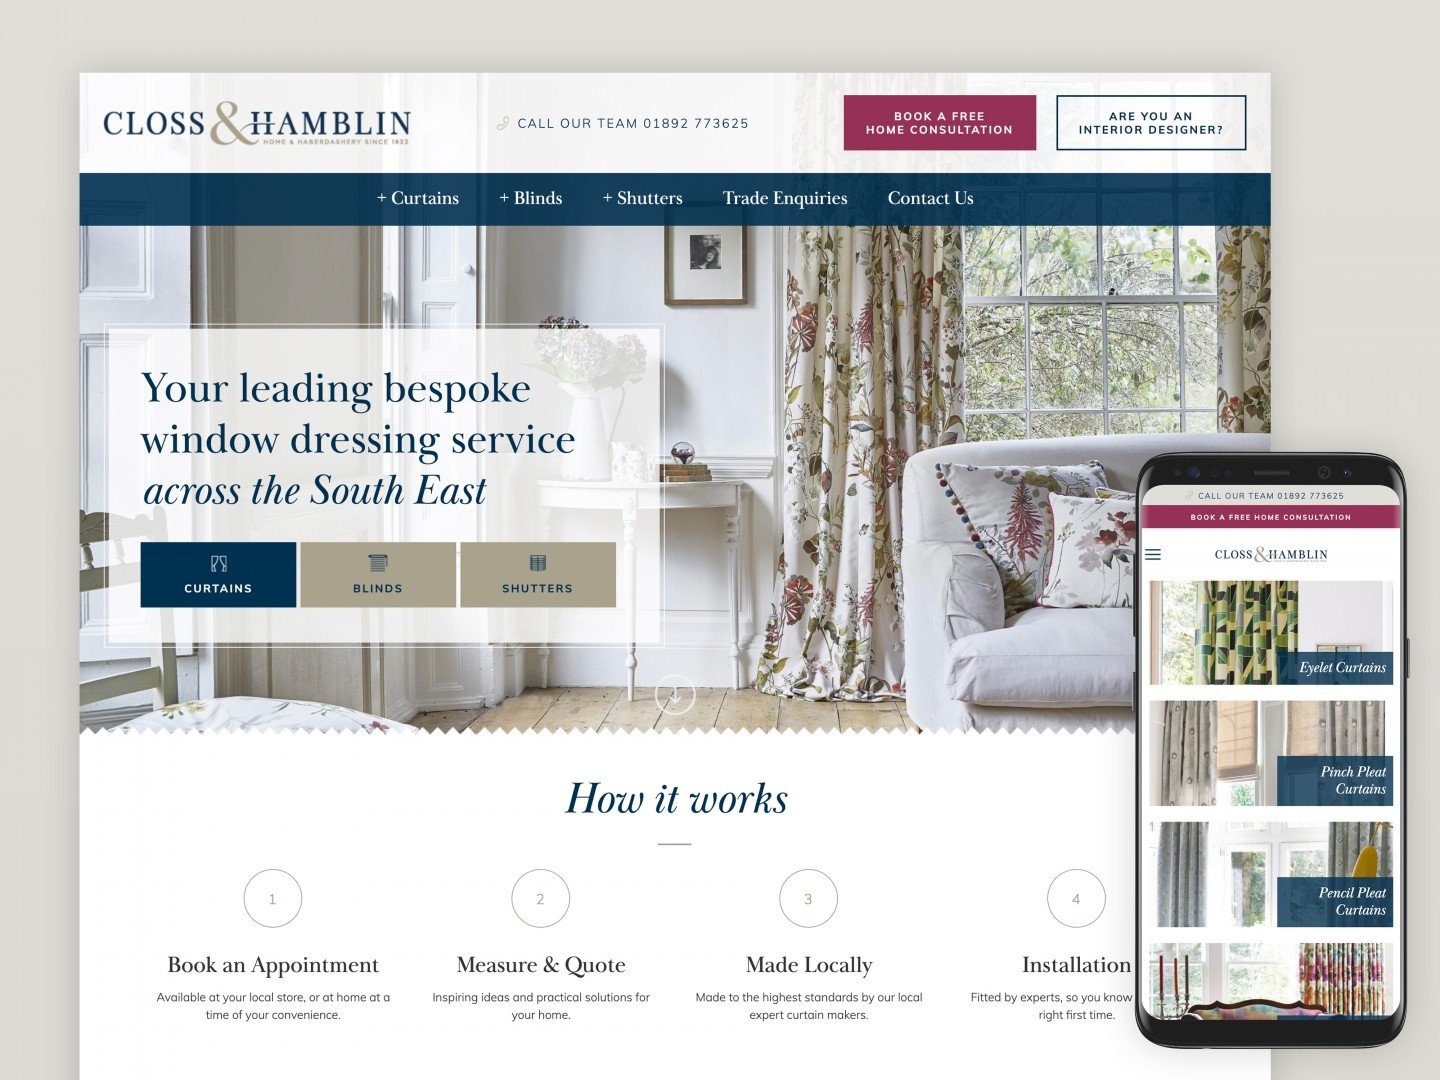 Website design and development - Closs and Hamblin Interiors